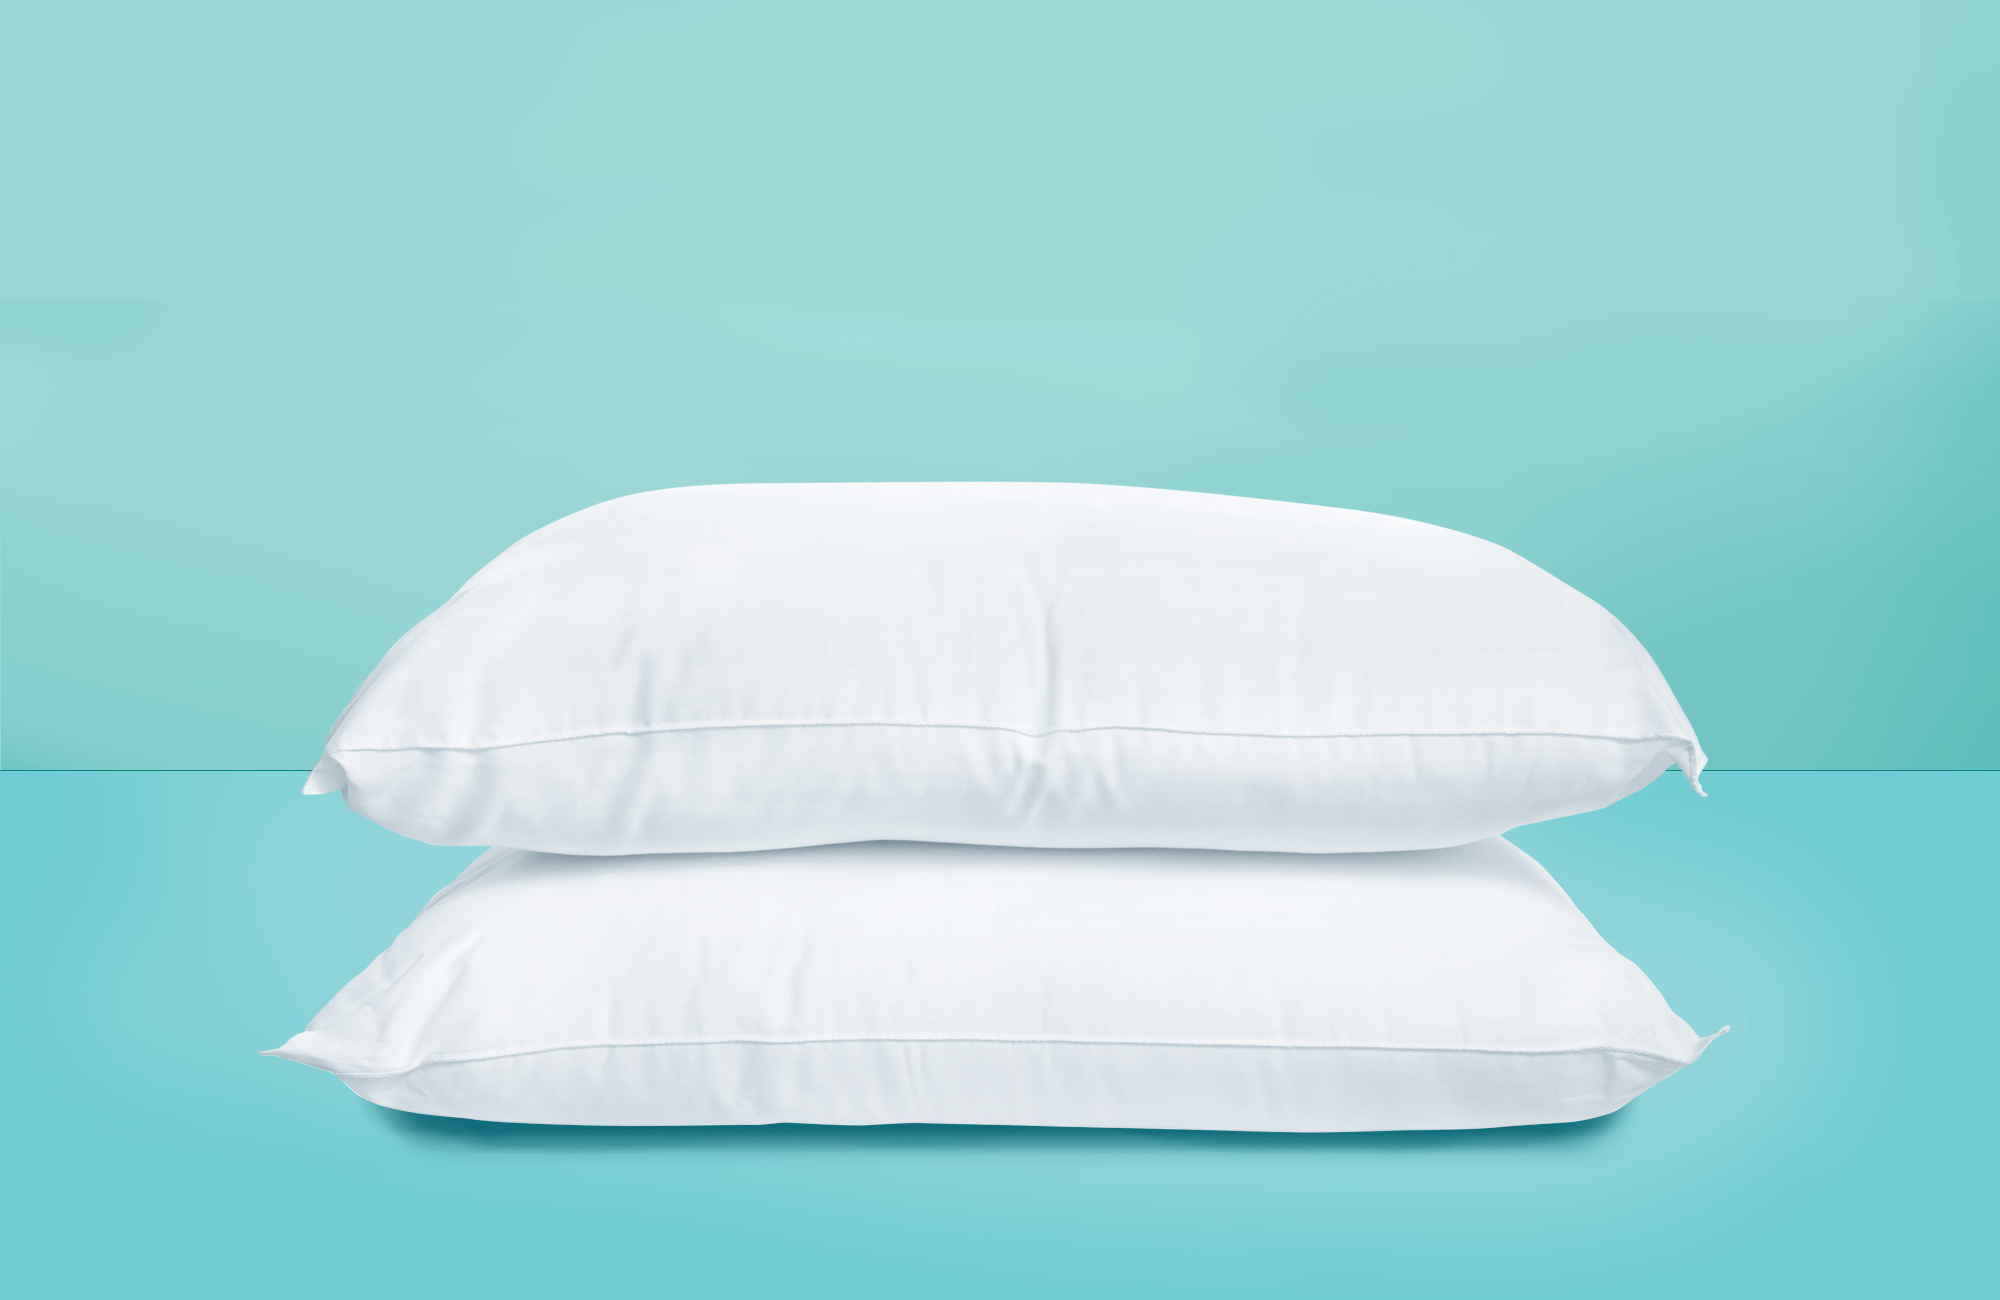 testers swear this 23 pillow is amazing for neck pain